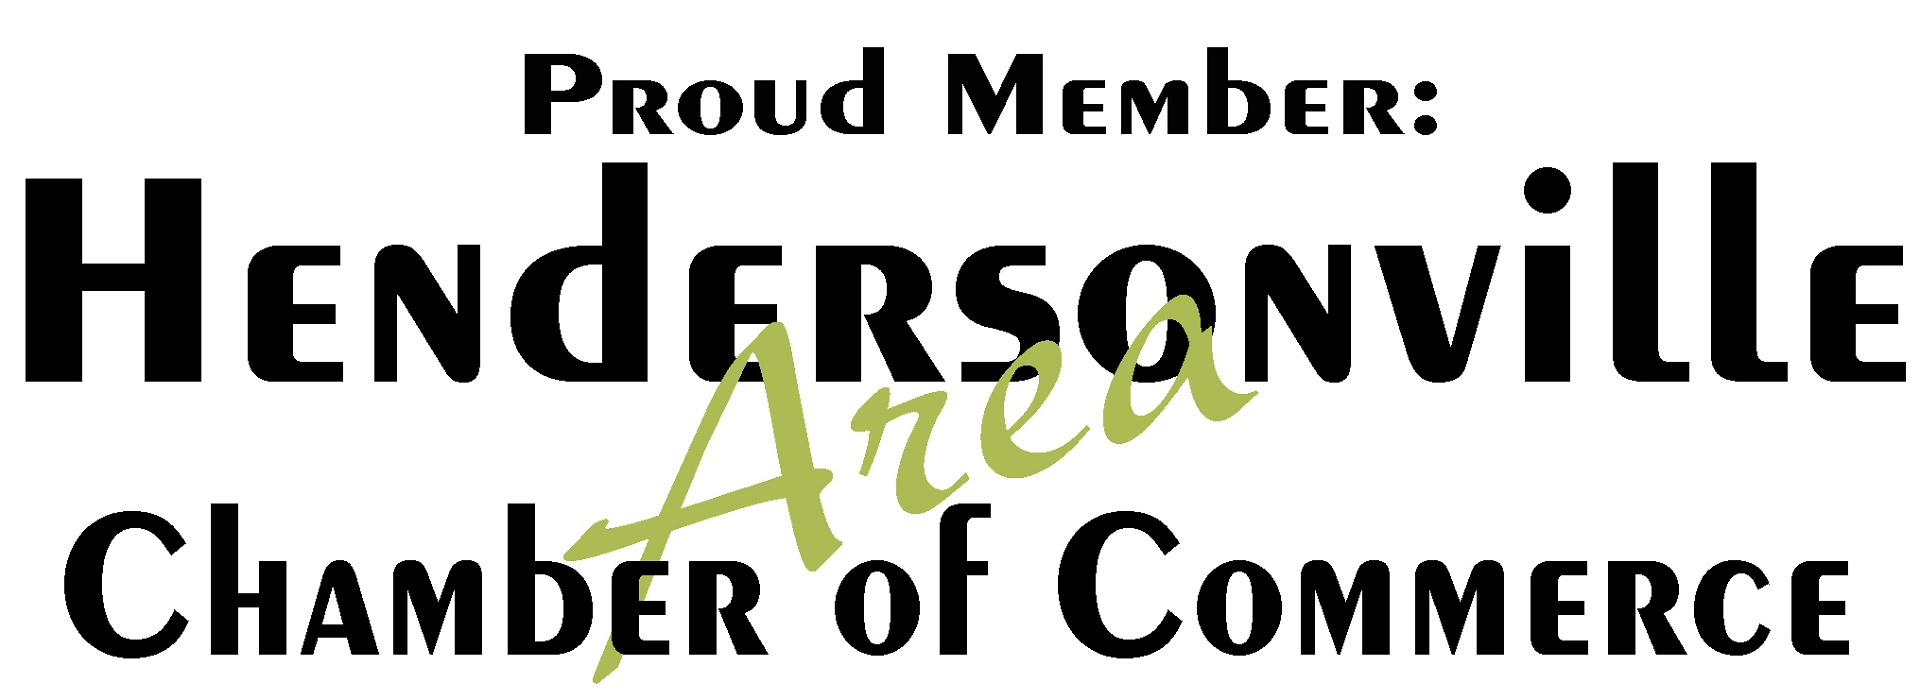 Proud Member Logo copy